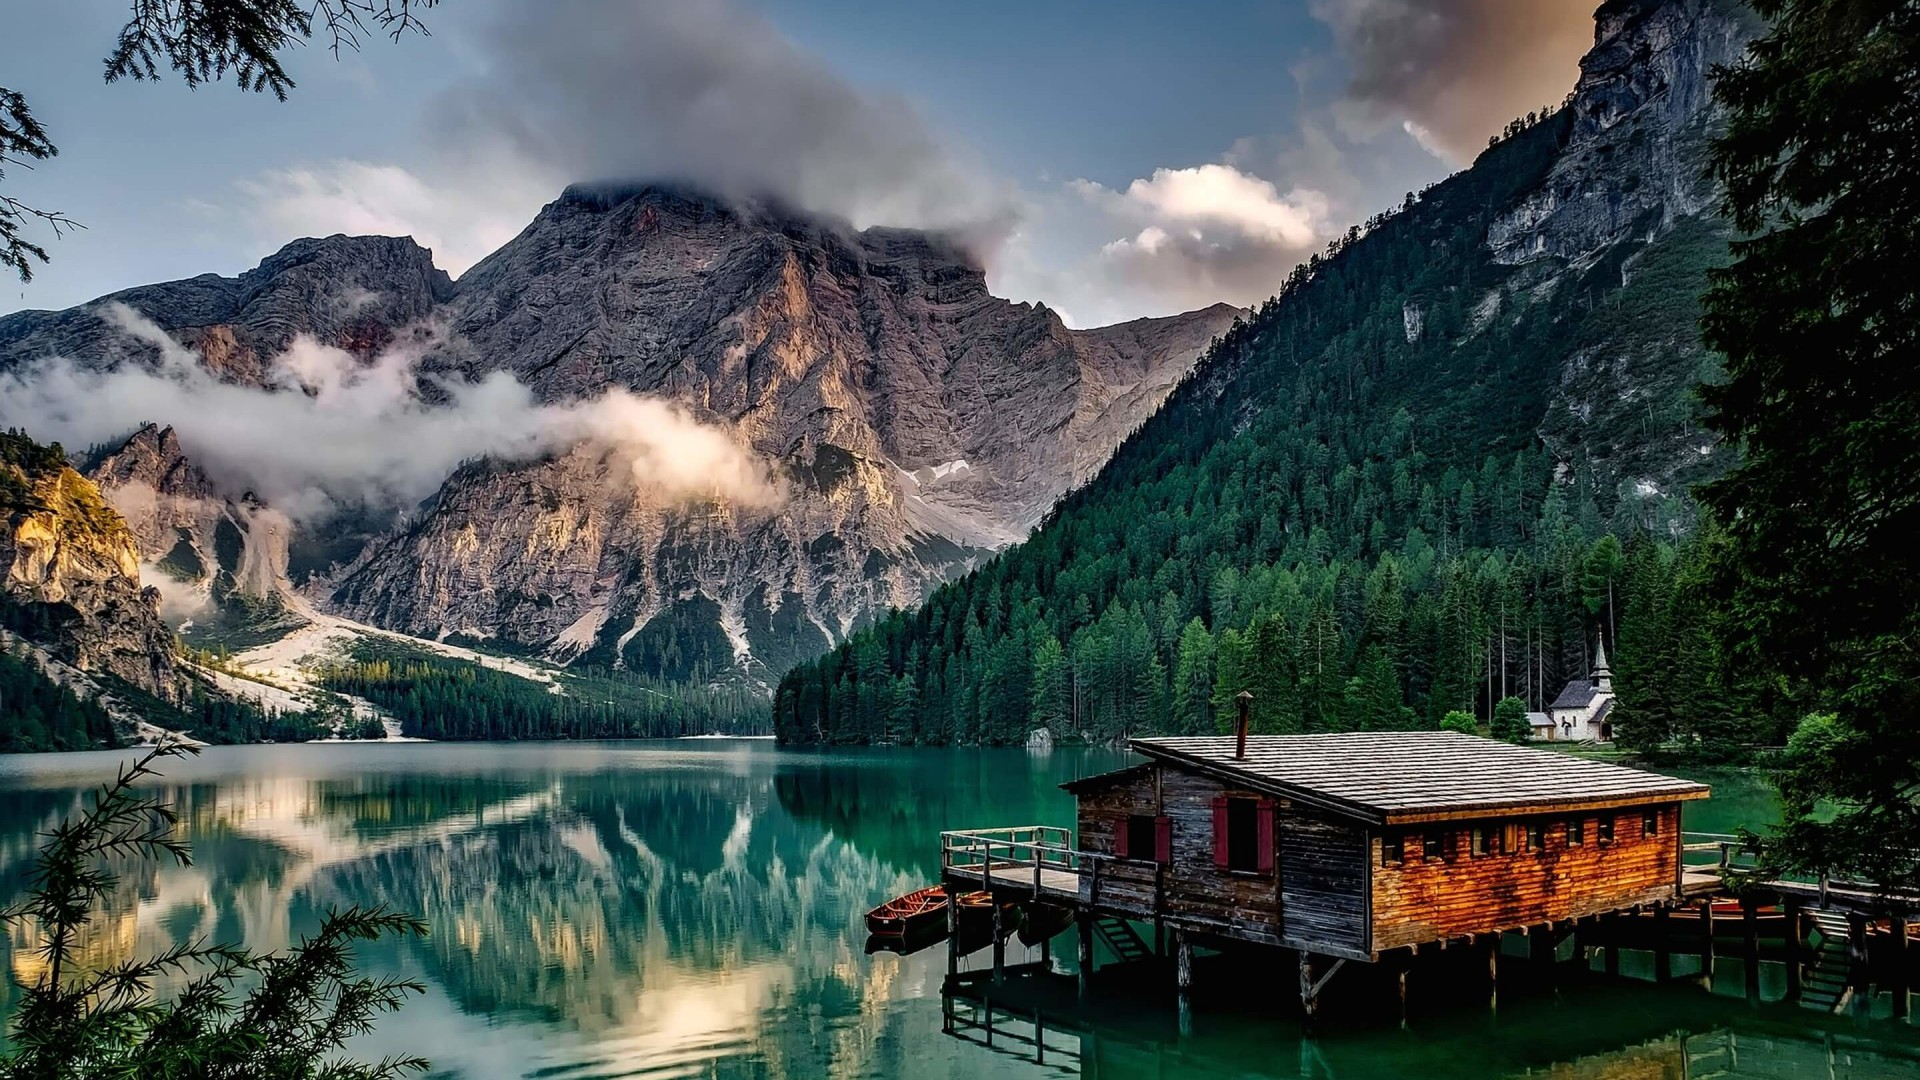 Lake Prags - Italy Wallpaper for Desktop 1920x1080